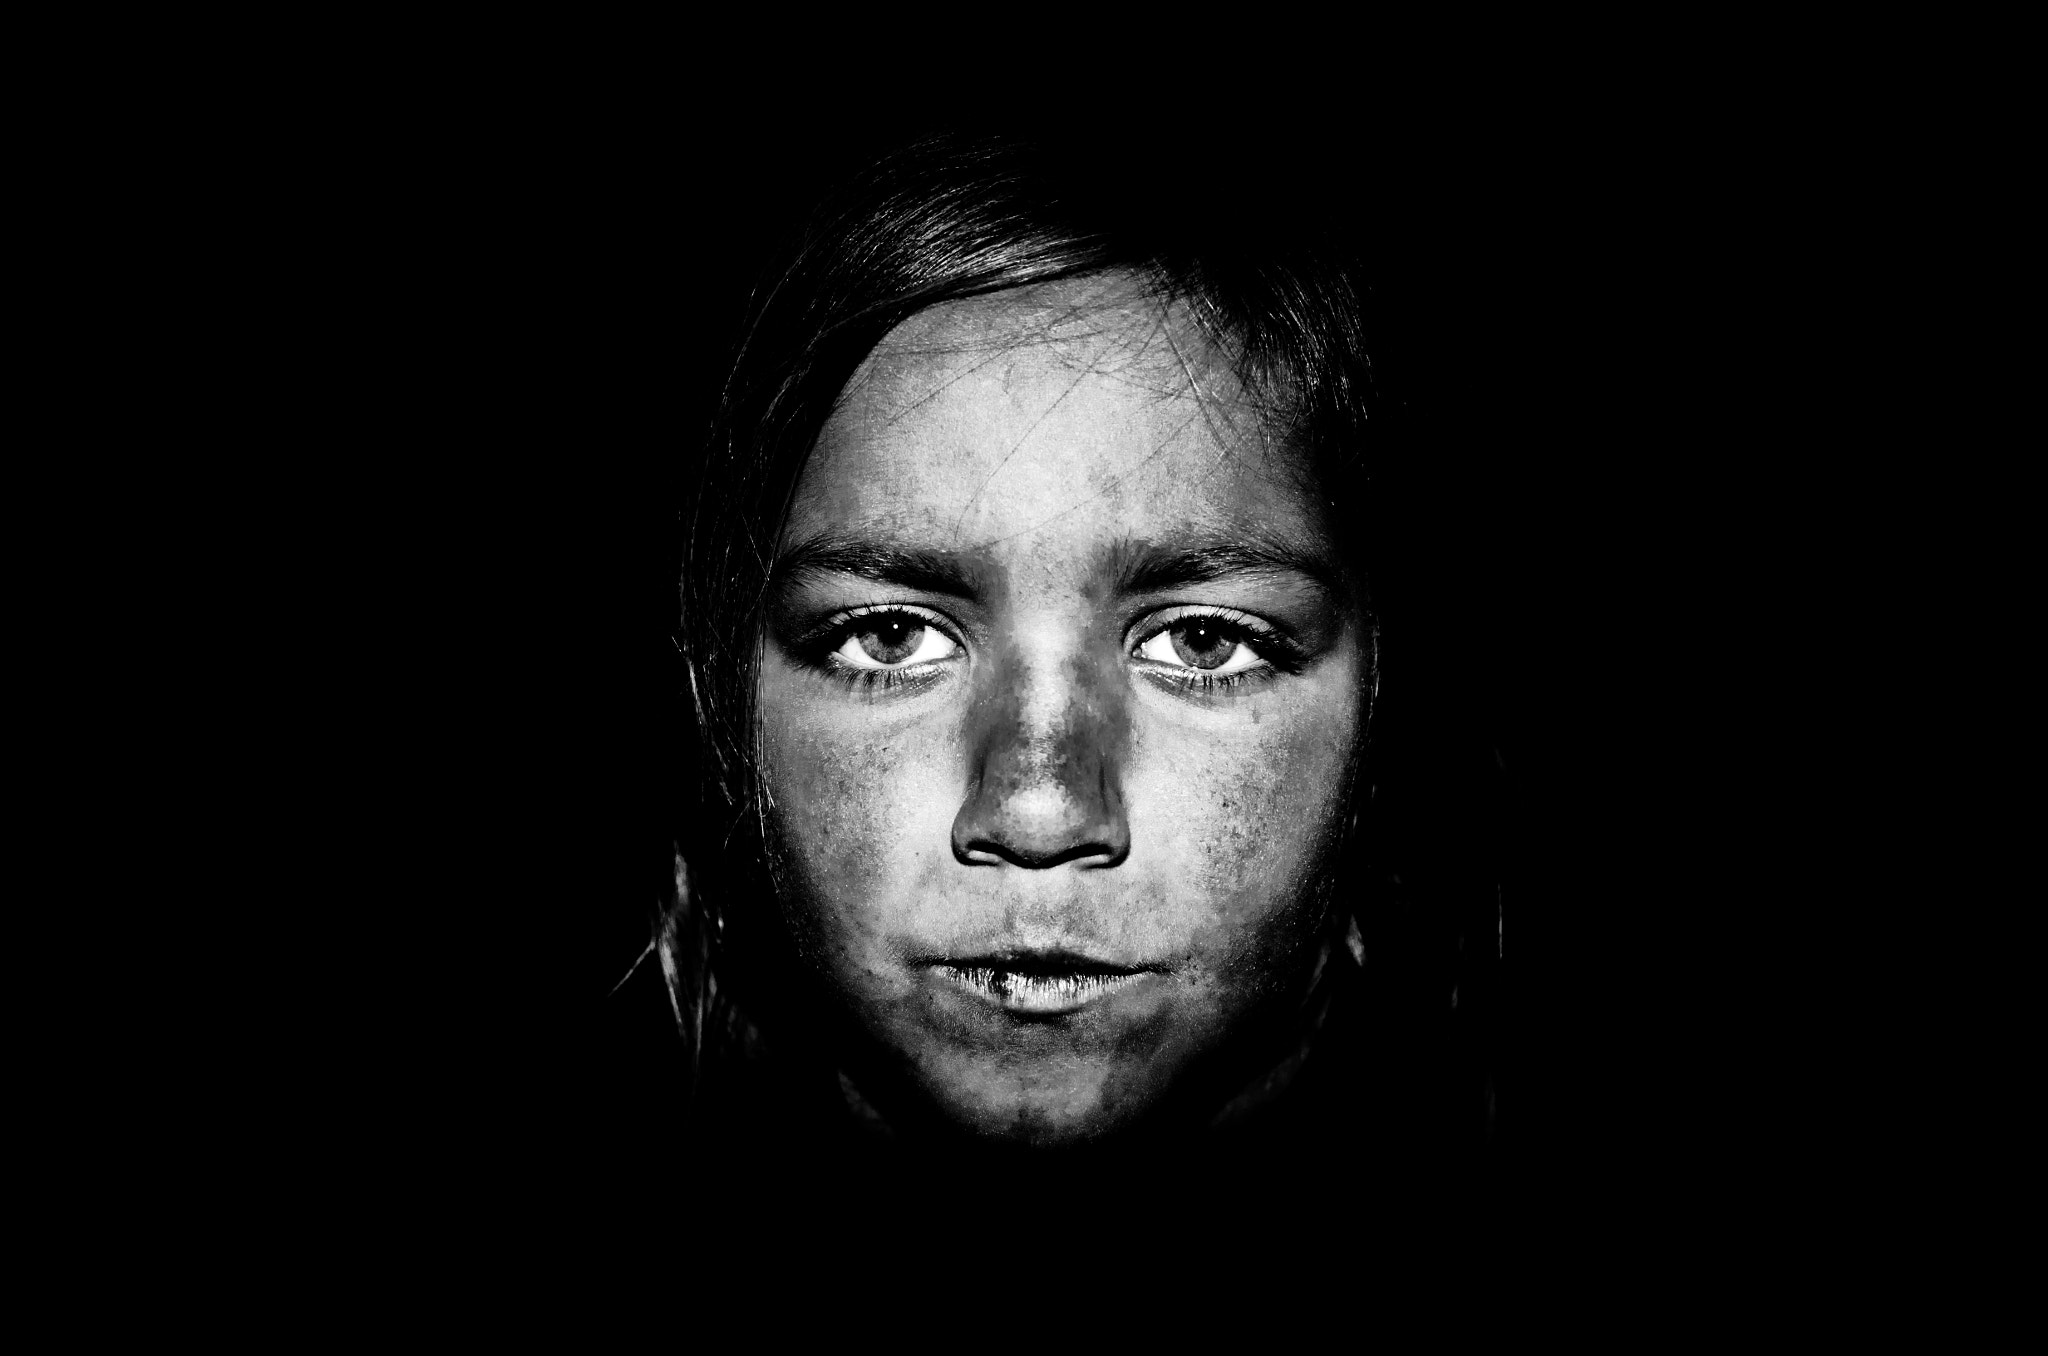 Photograph Poverty by Danny Kooiker on 500px